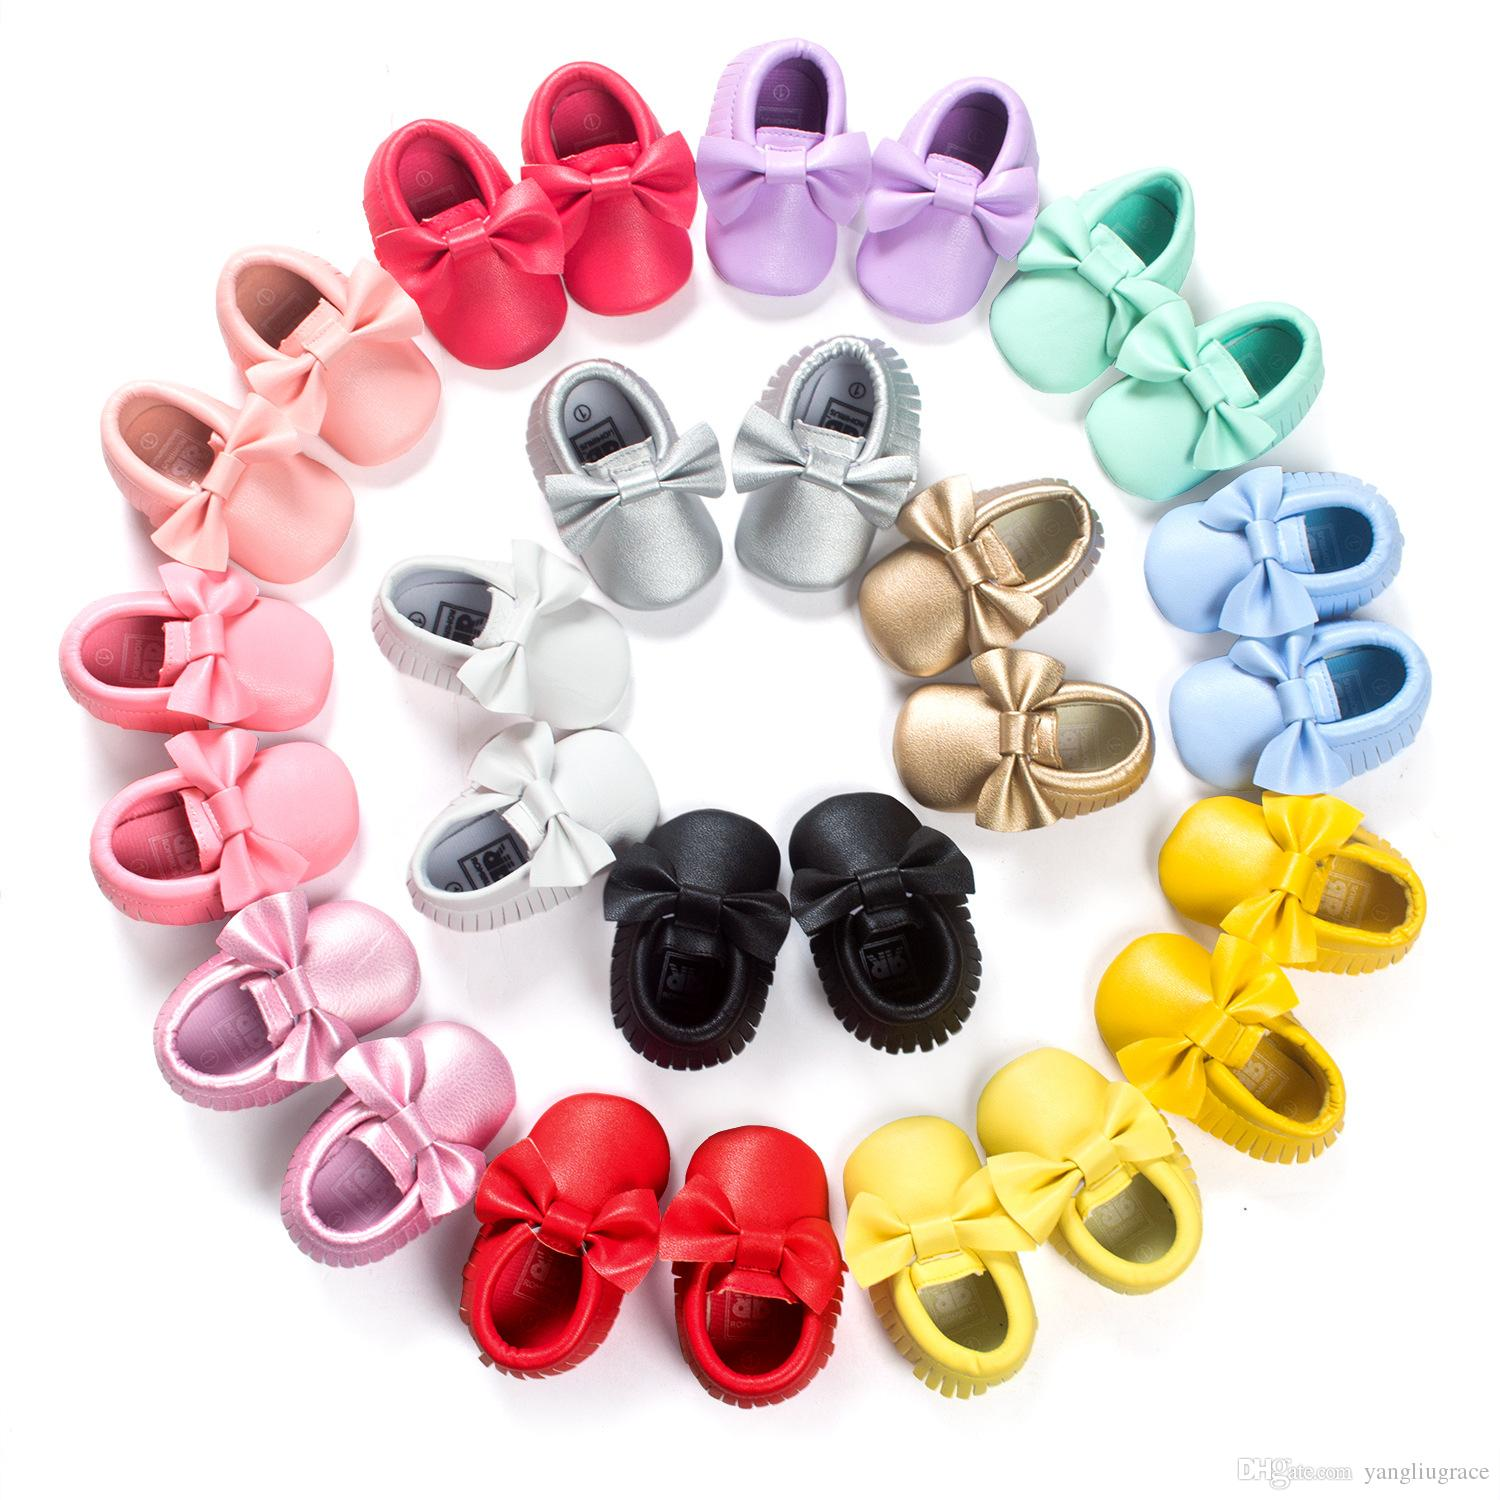 Babies Shoes Soft First Walkers New 22 Colors Tassels Baby Moccasin Newborn Bottom PU leather Prewalkers Boots Non-slip Footwear Crib Shoes